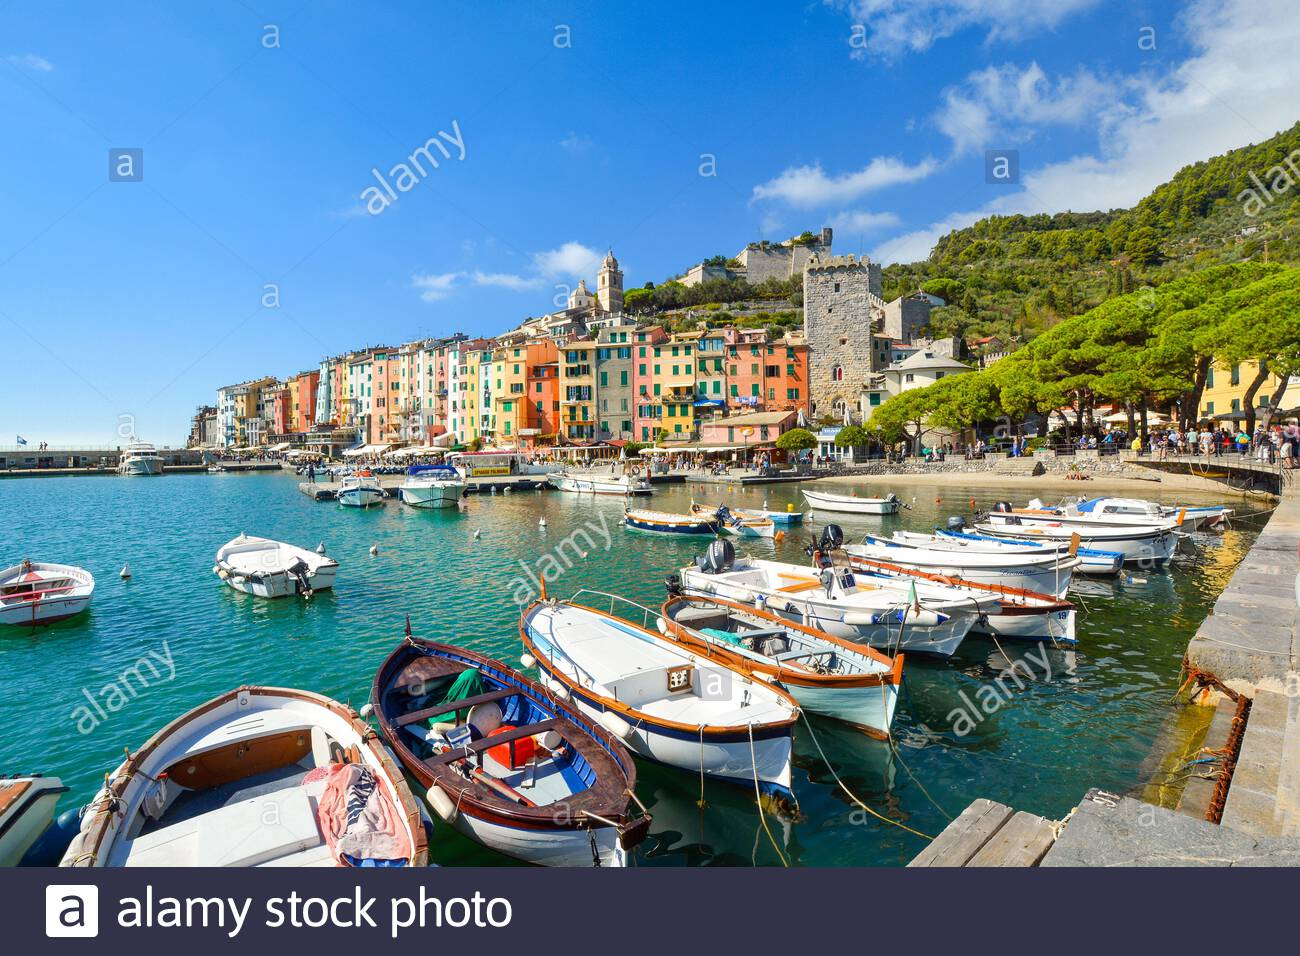 A row of boats in the harbor and pier at the colorful village of Portovenere, Italy, on the Ligurian coast, an Unesco World Heritage Site. Stock Photo